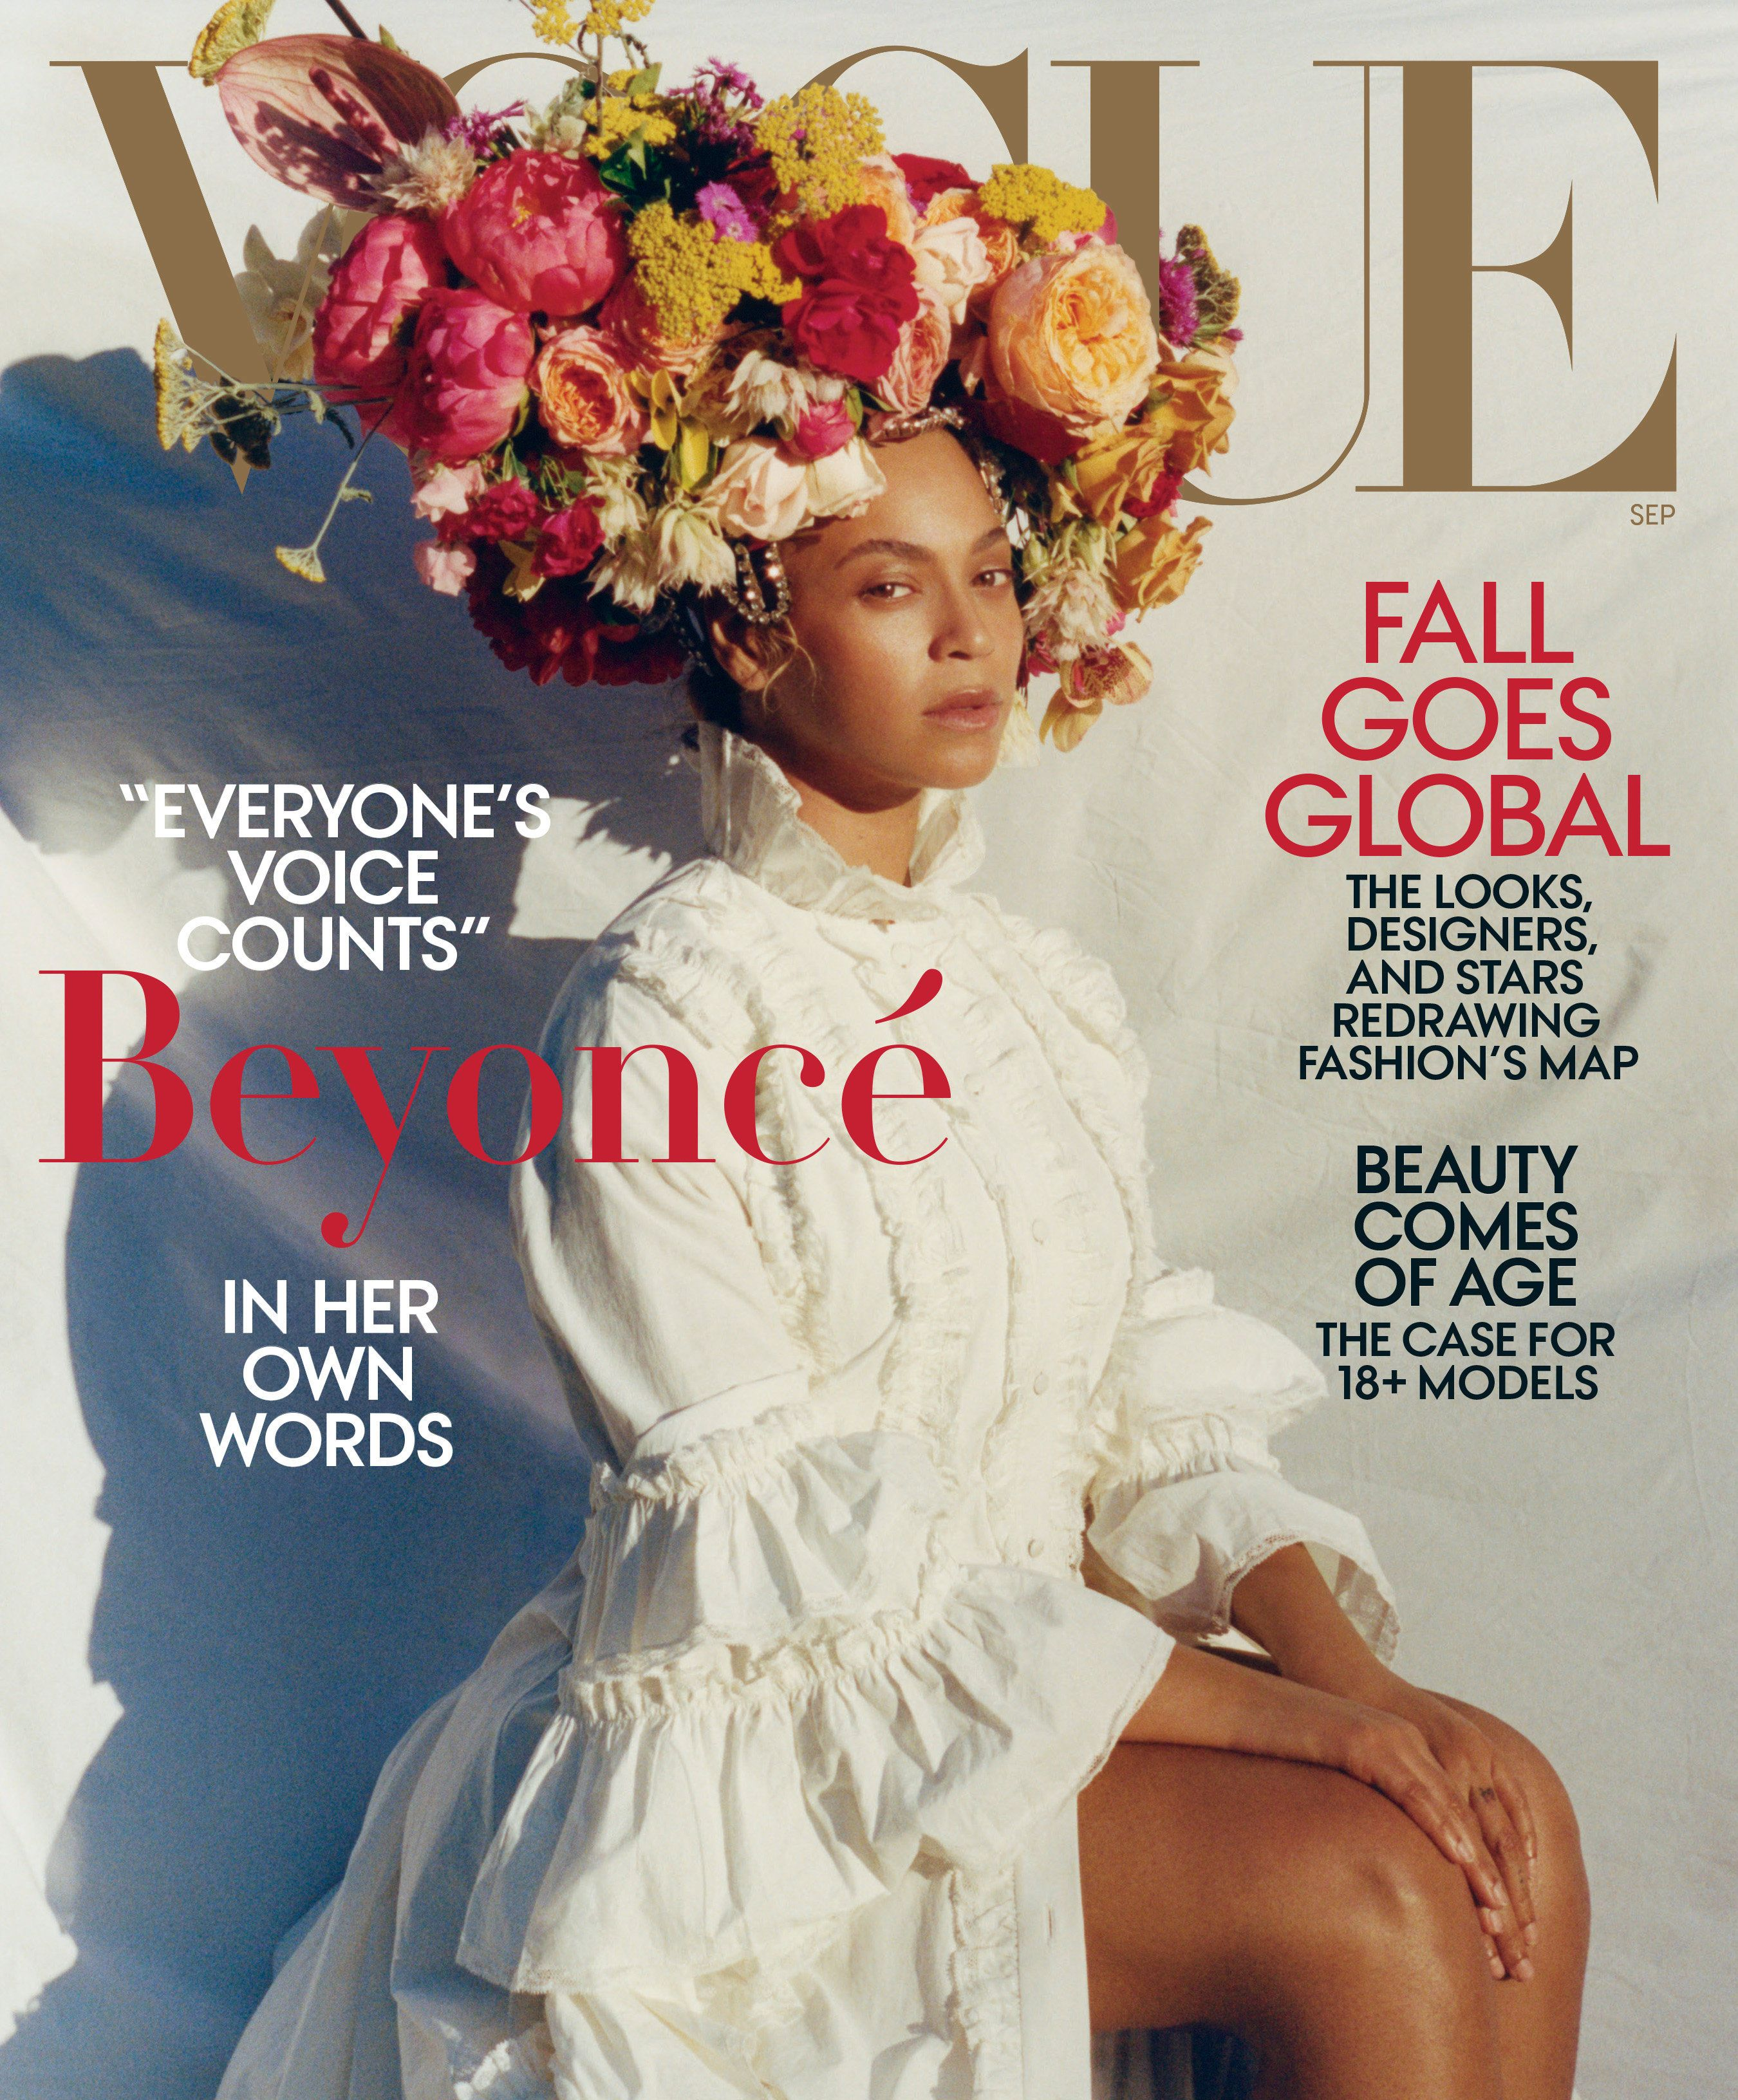 Beyoncé on the cover of